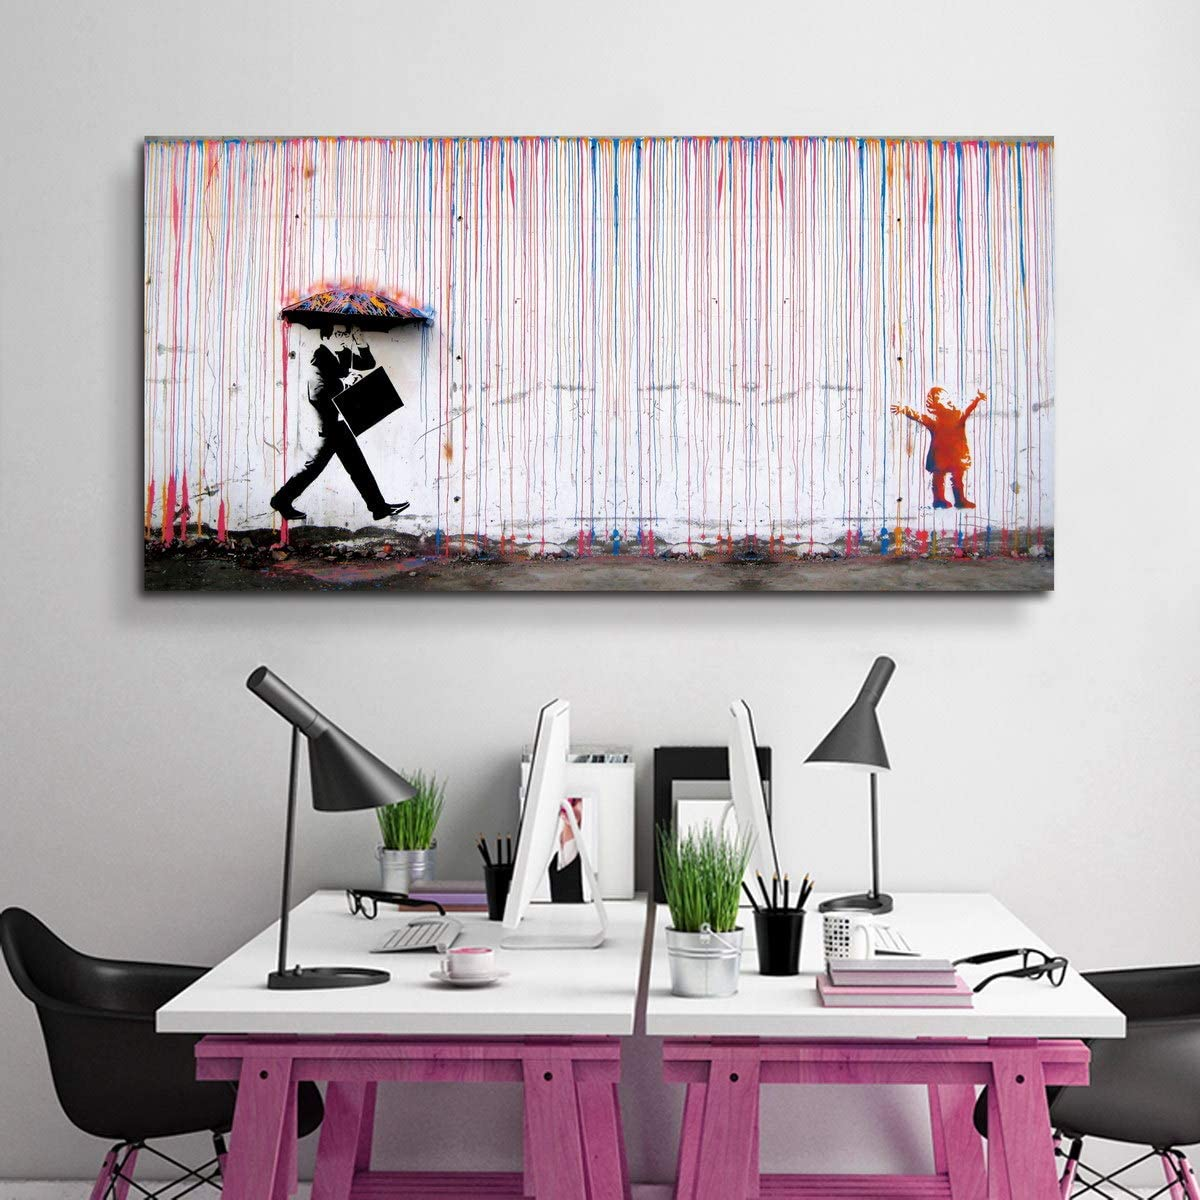 Banksy Canvas Challenge the lowest price of Japan ☆ Print Colorful Rain Art Galler Wall Rapid rise Graffiti